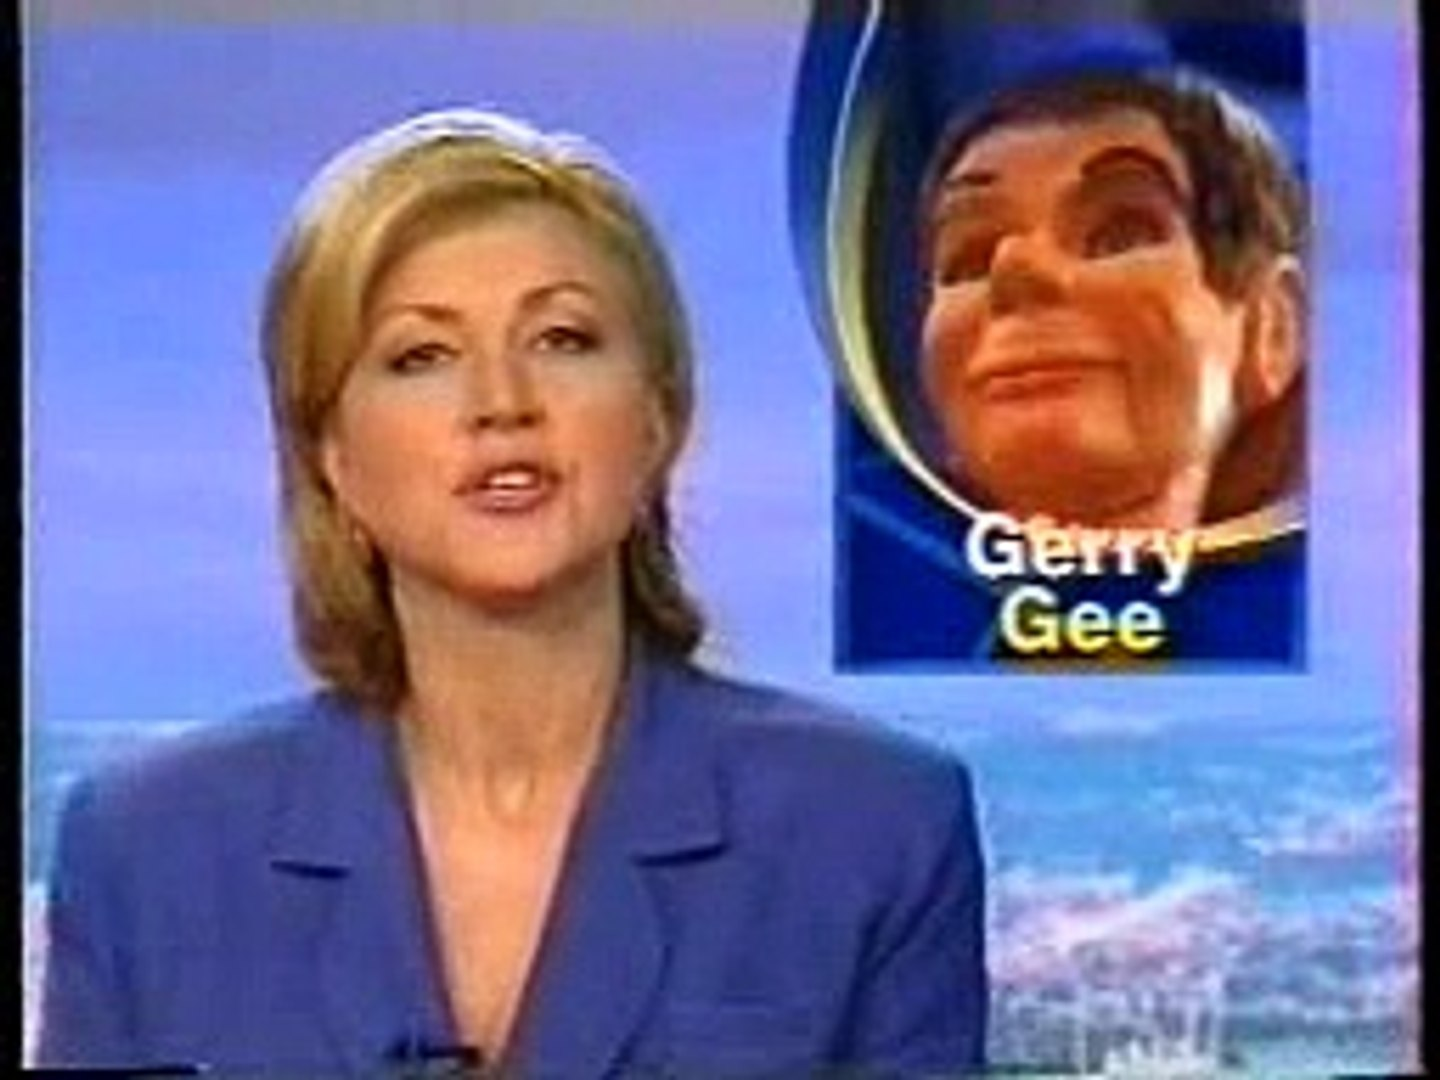 Gerry Gee On TV